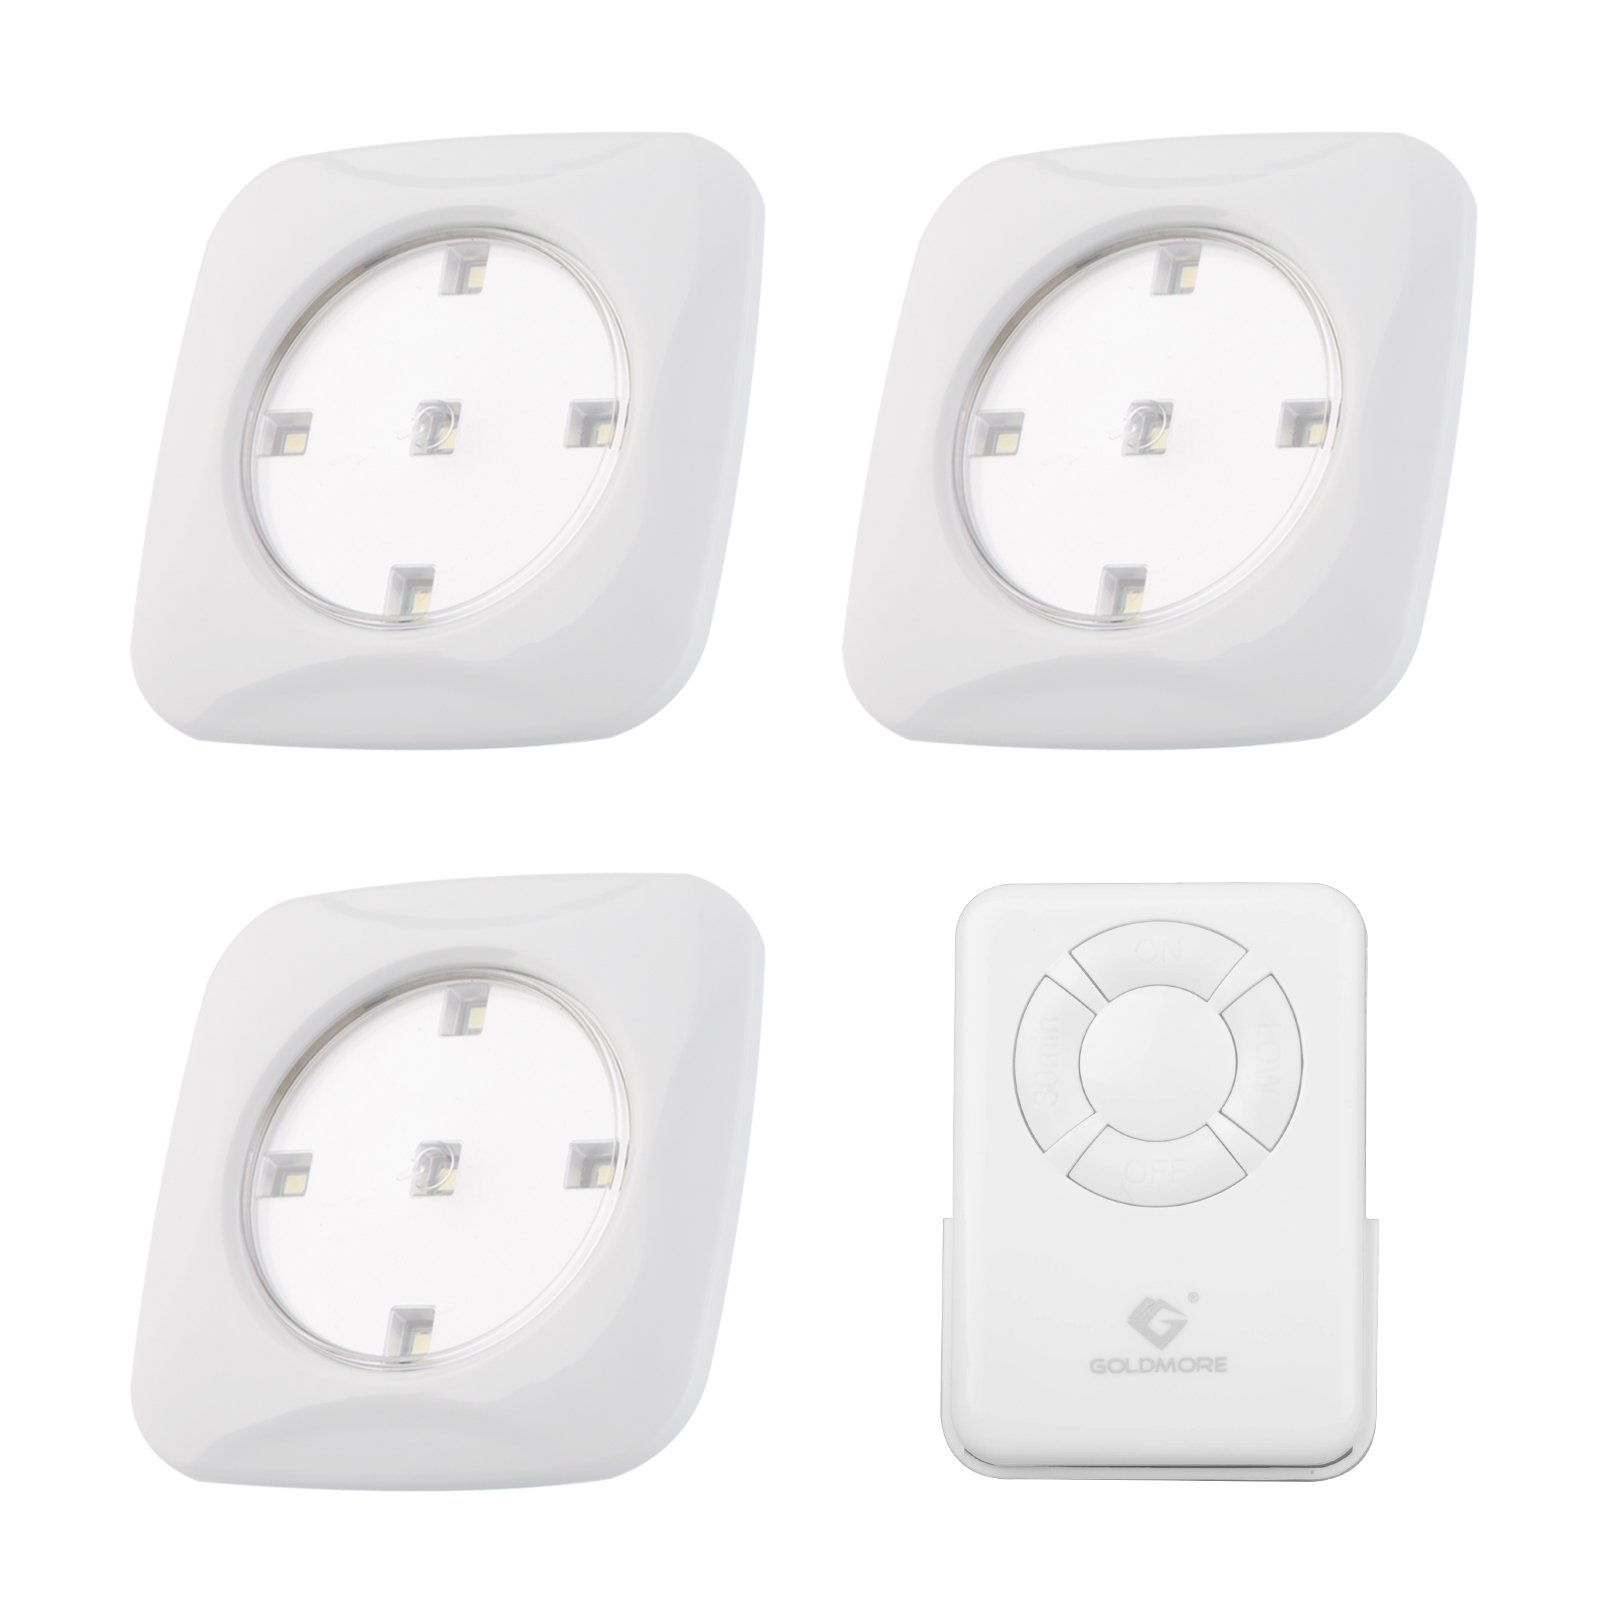 3 Pack Tap Light,5 LED Battery-powered Wireless NightLight Remote Control,Goldmore Touch Lights Stick-on Push Light for Closets,Cabinets,Kitchen,Utility Rooms,Pantries,Hallway,Garage-White by goldmore (Image #1)